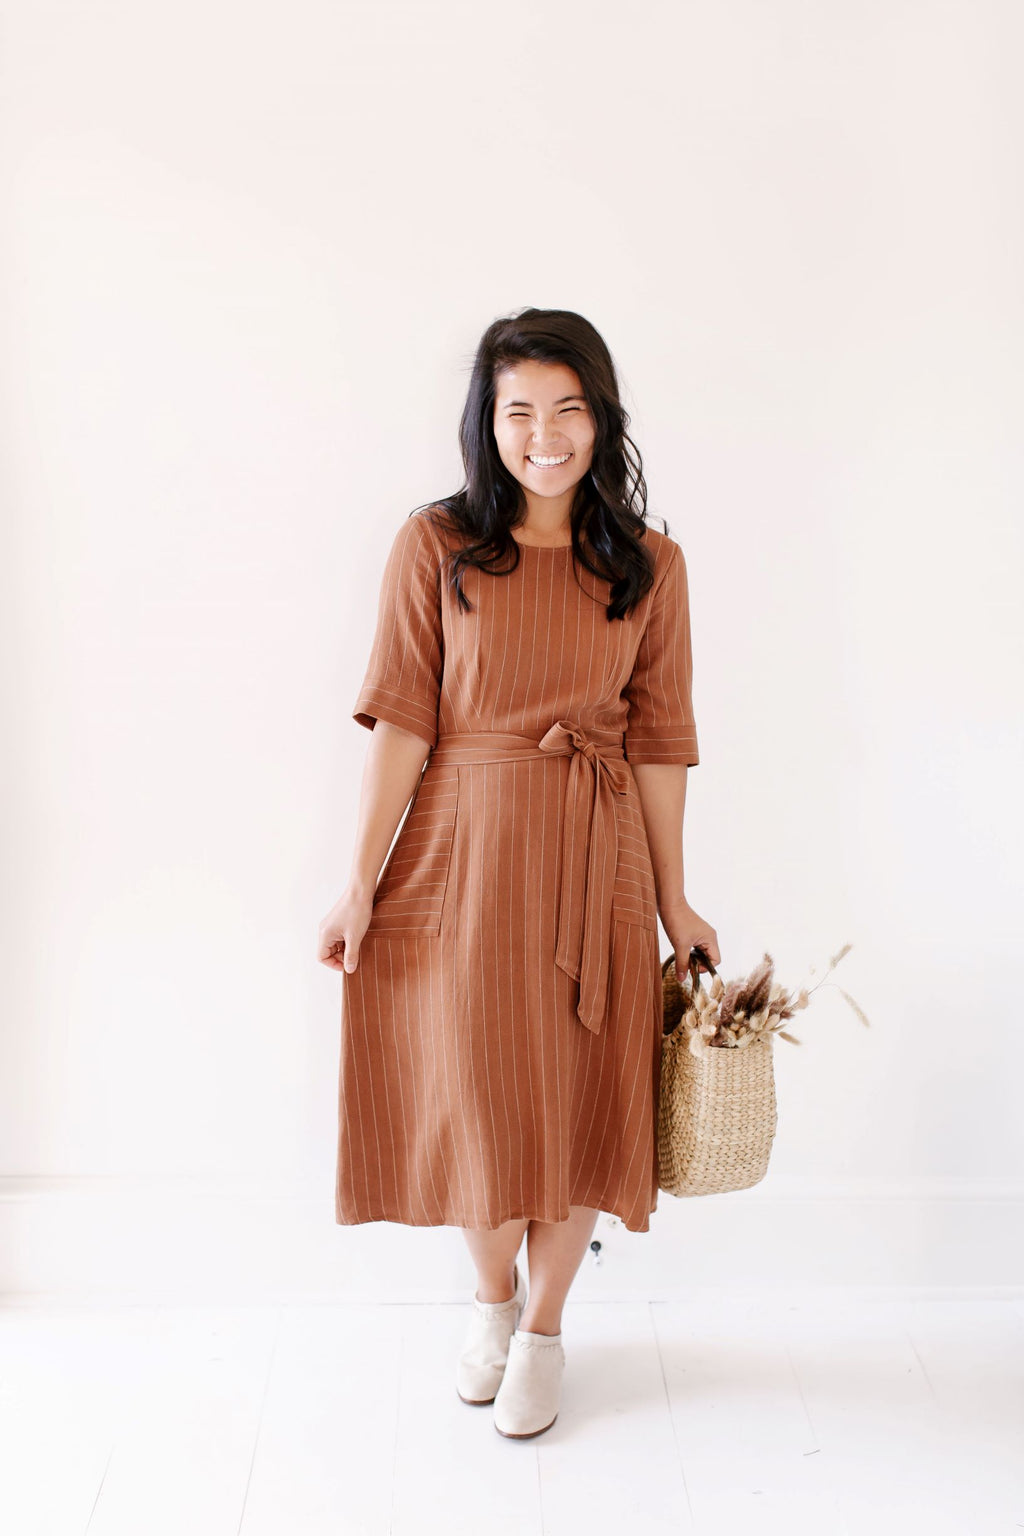 'Halle' Pin Stripe Dress in Chestnut